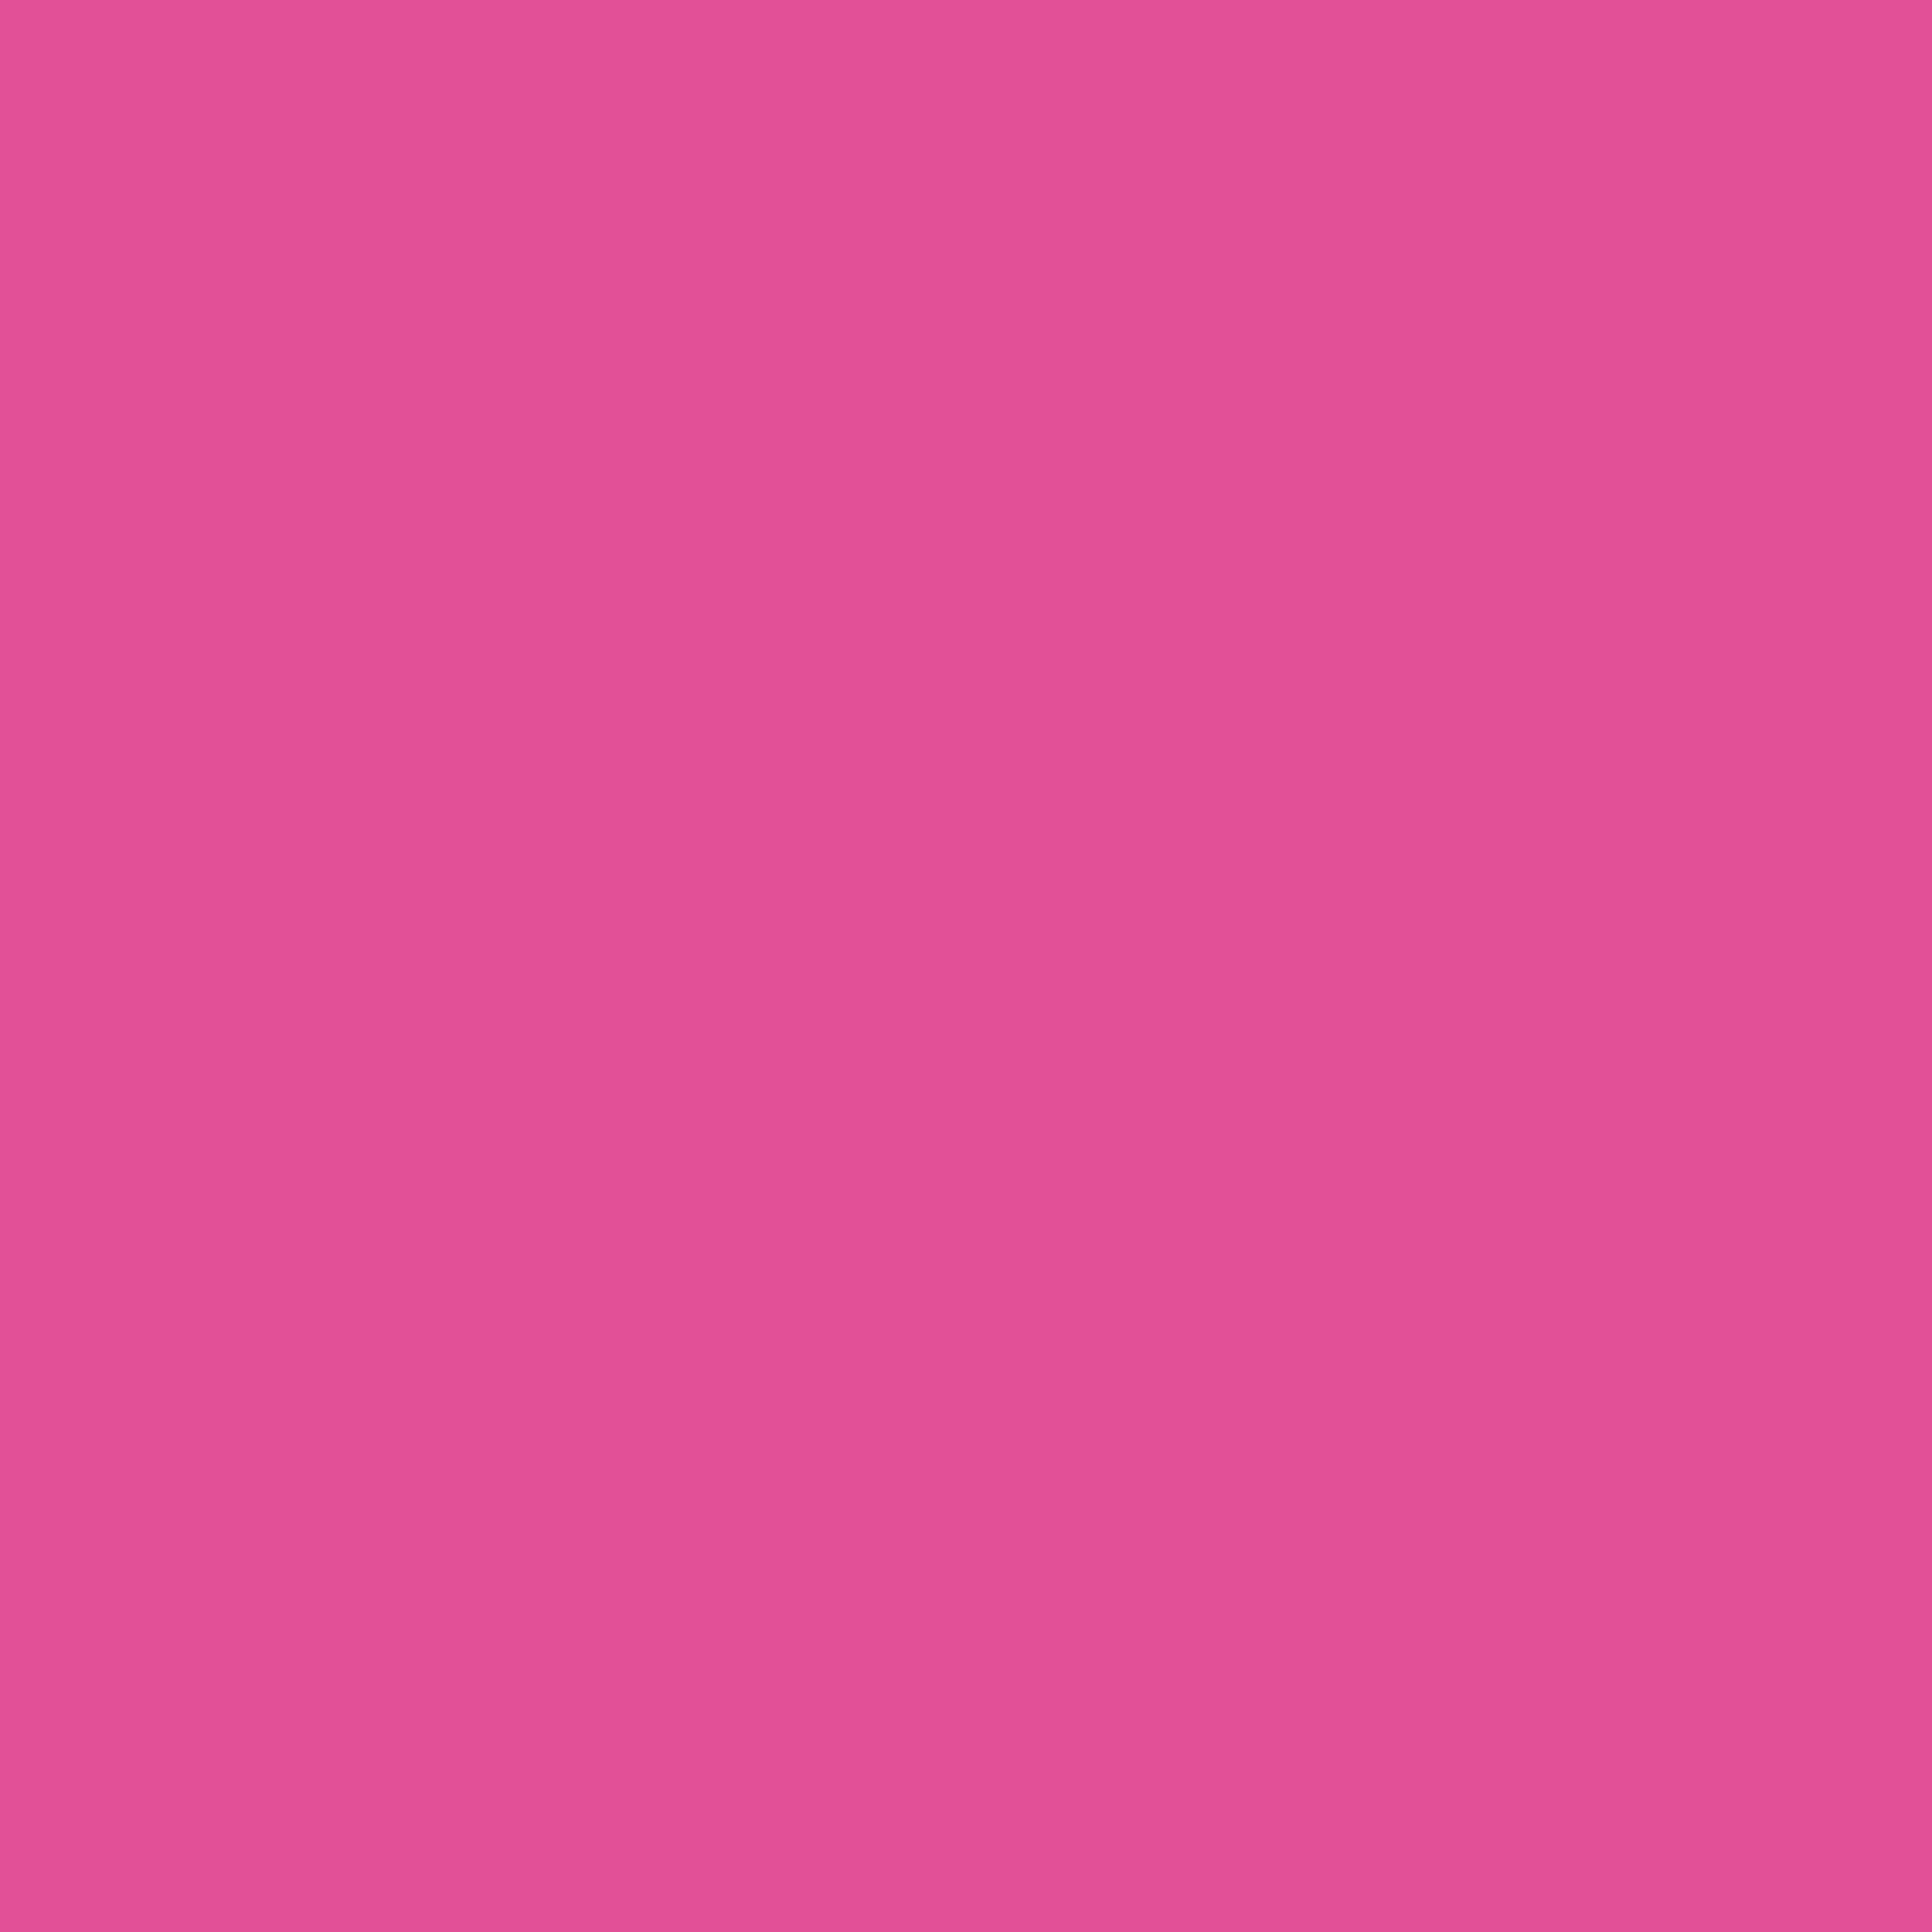 2732x2732 Raspberry Pink Solid Color Background